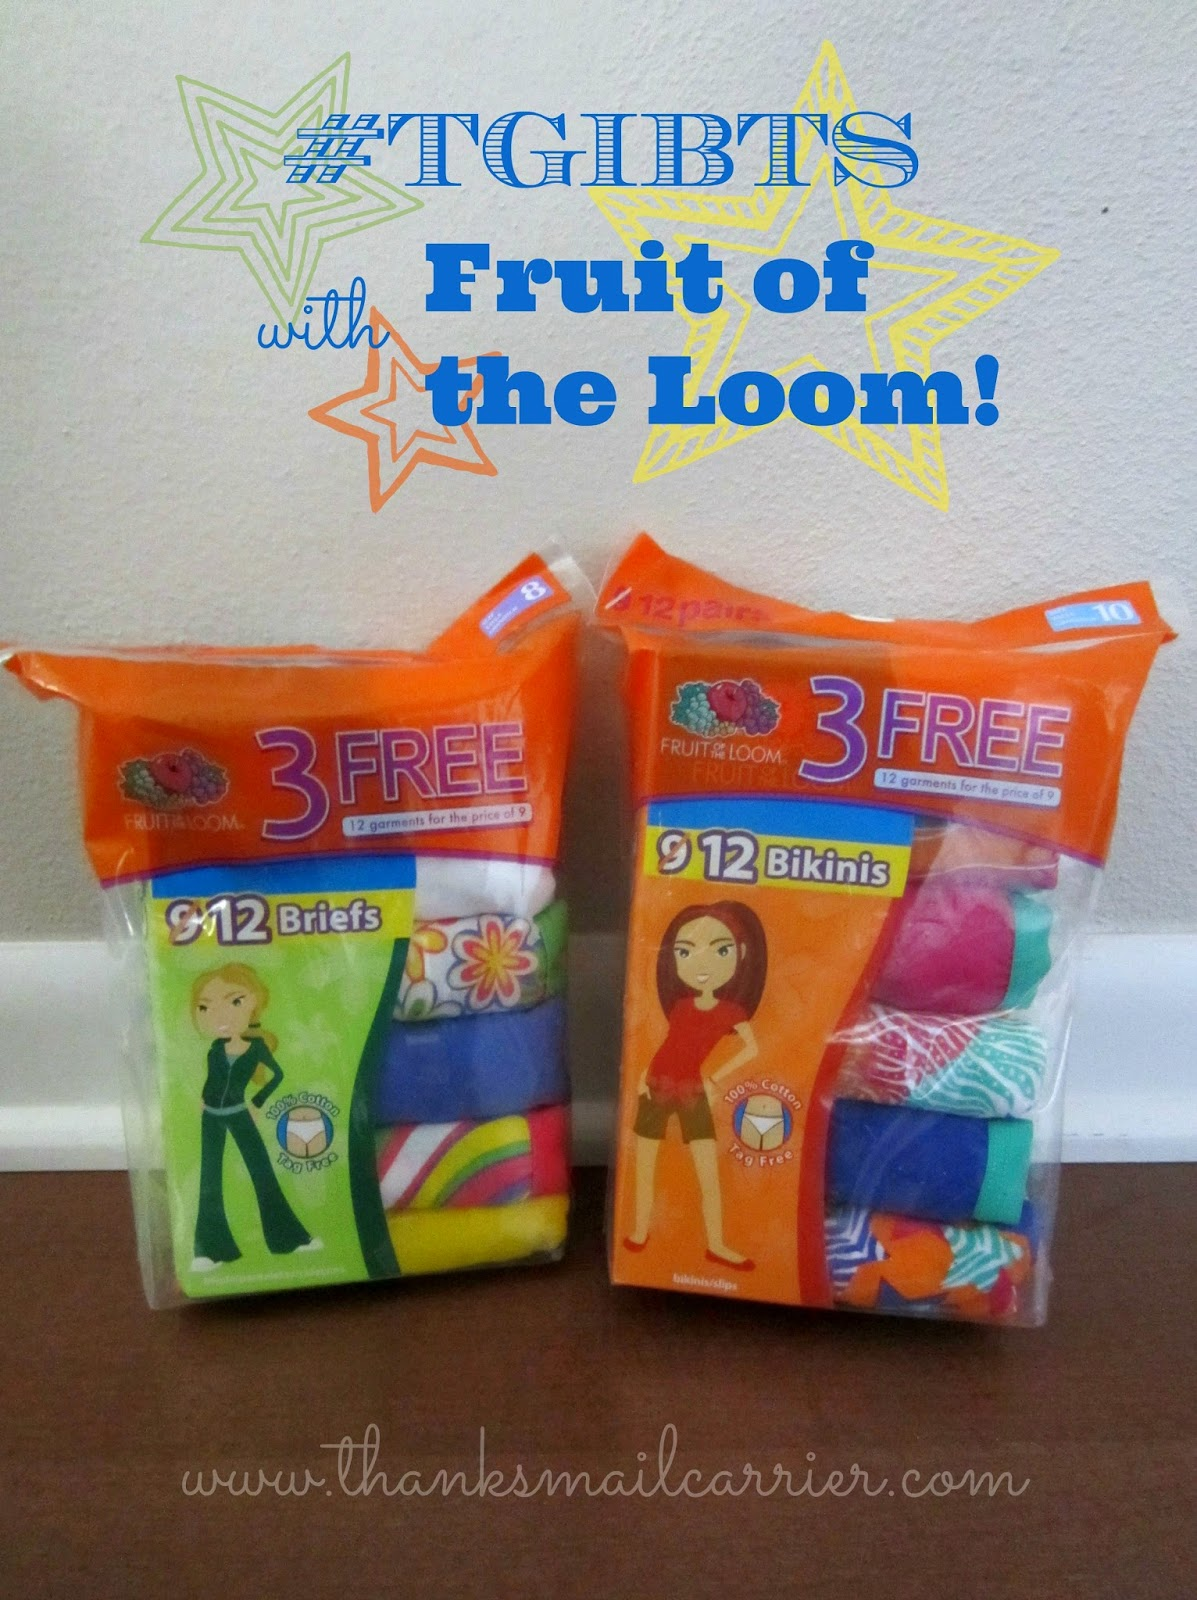 TGIBTS Fruit of the Loom